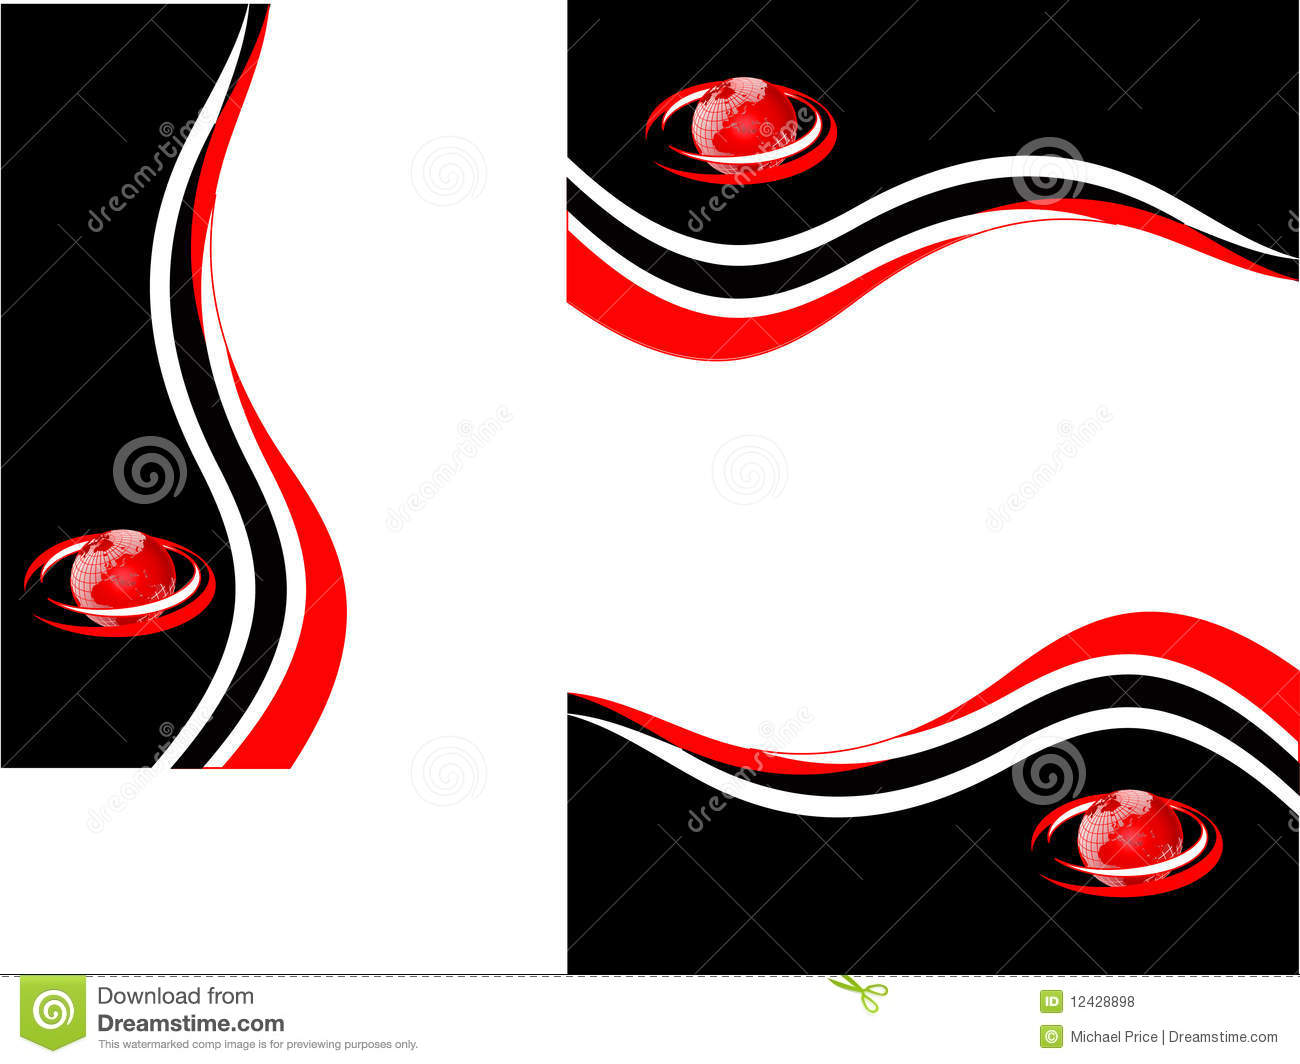 A set of red,black and white business stationary